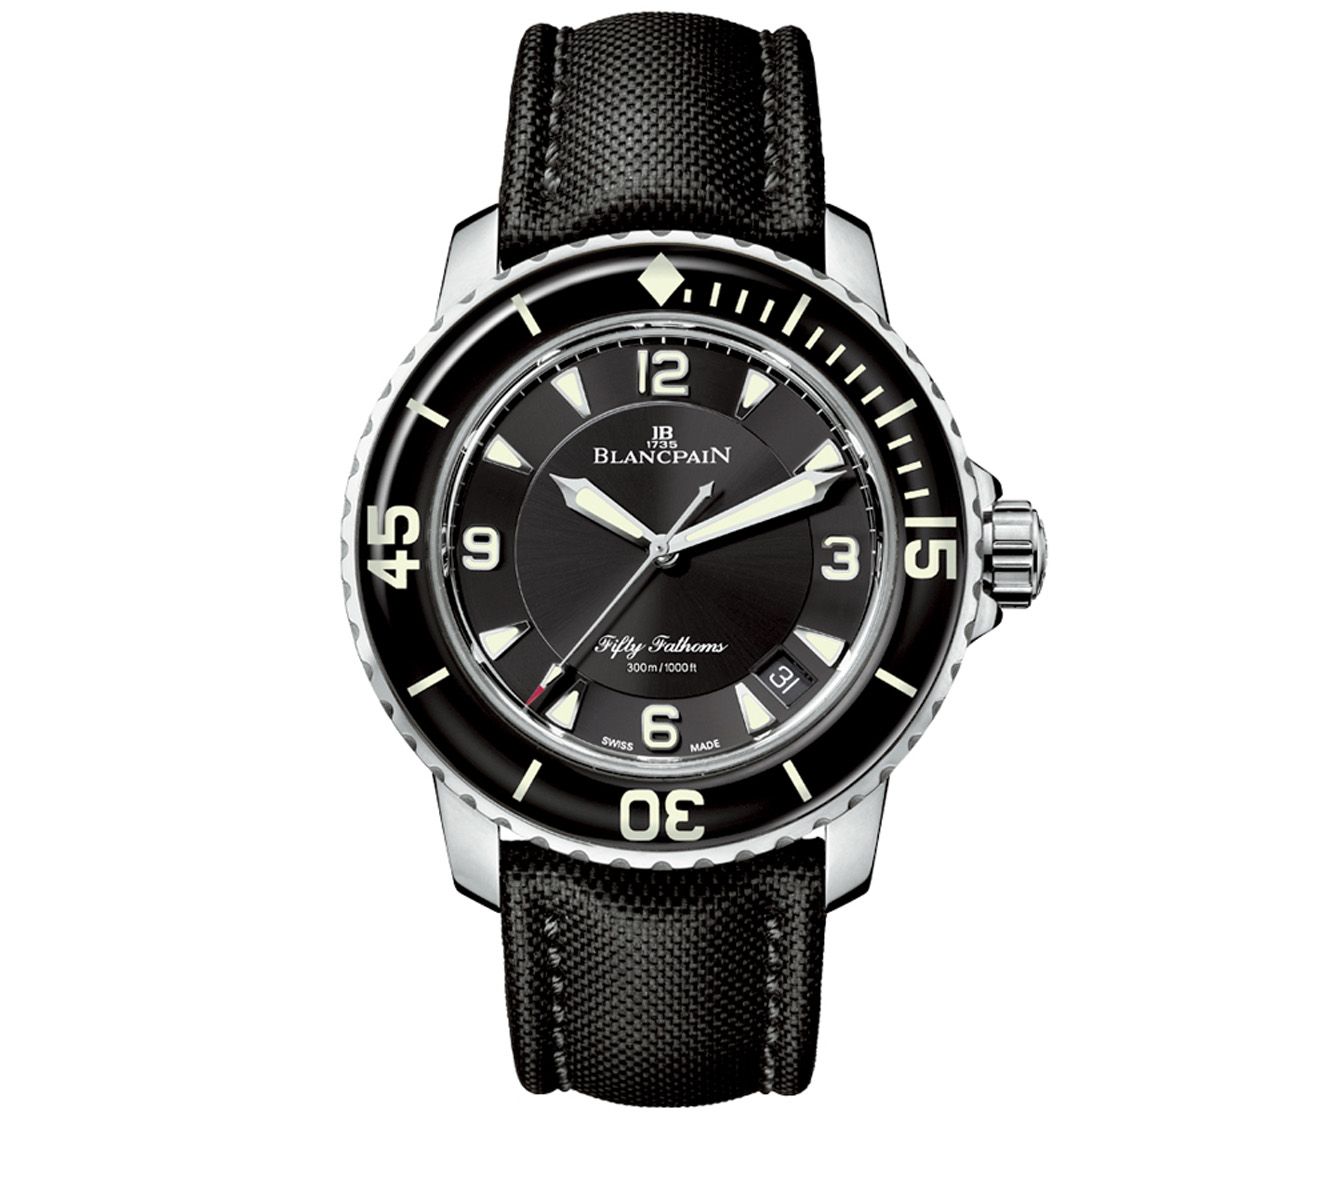 Часы Automatique Blancpain Fifty Fathoms 5015 1130 52B - фото 1 – Mercury